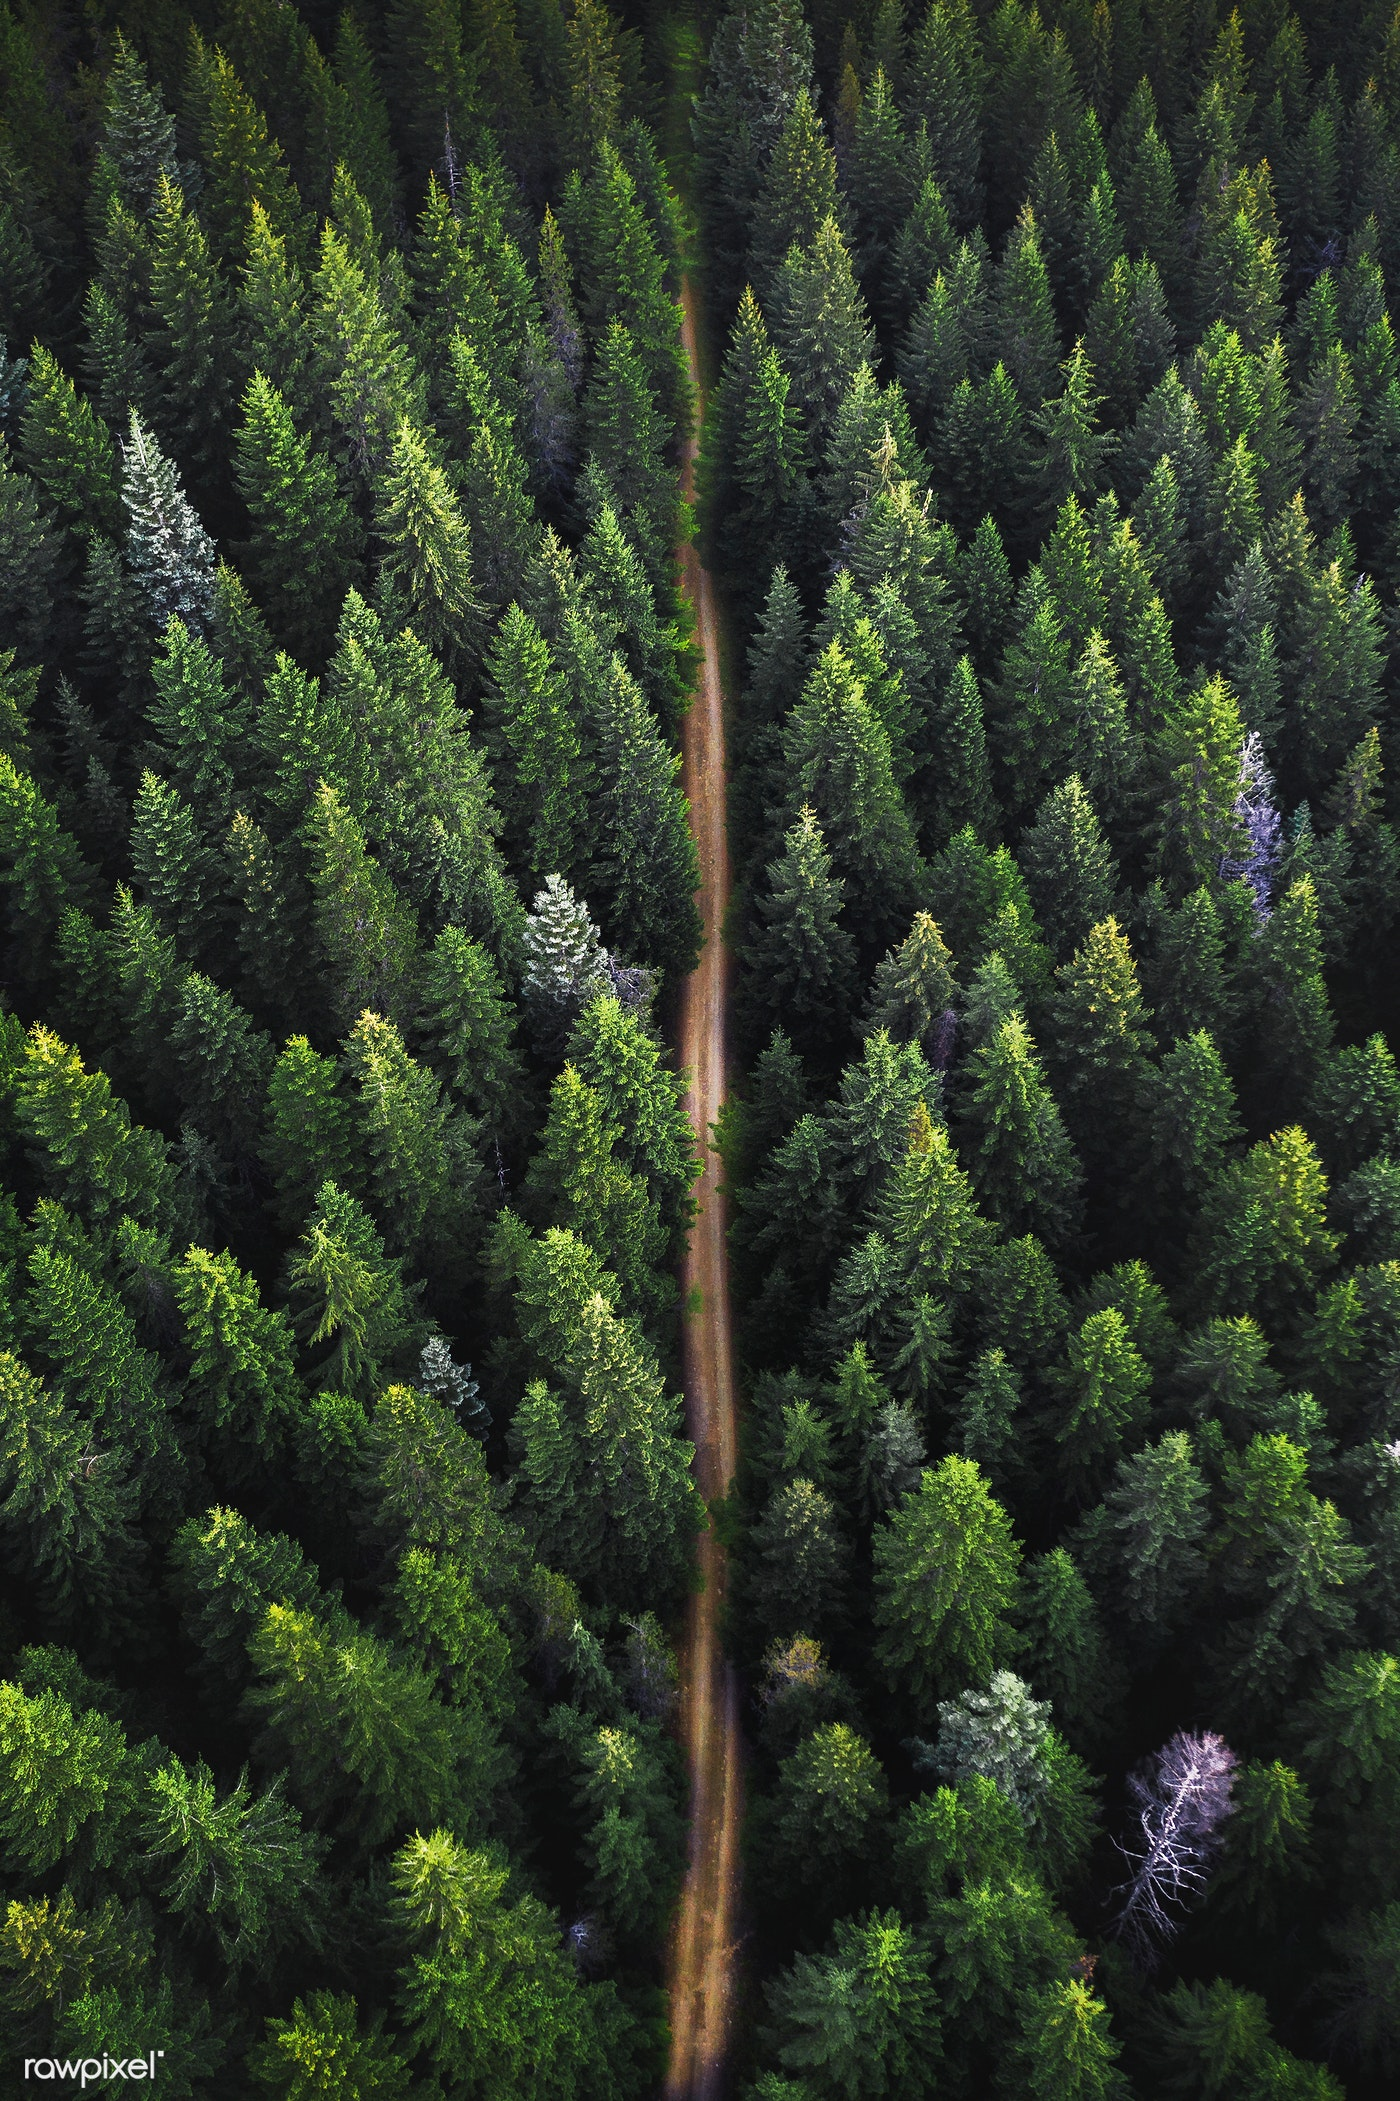 pf-lukestackpoole5-aerial-of-forest-jj-a.jpg